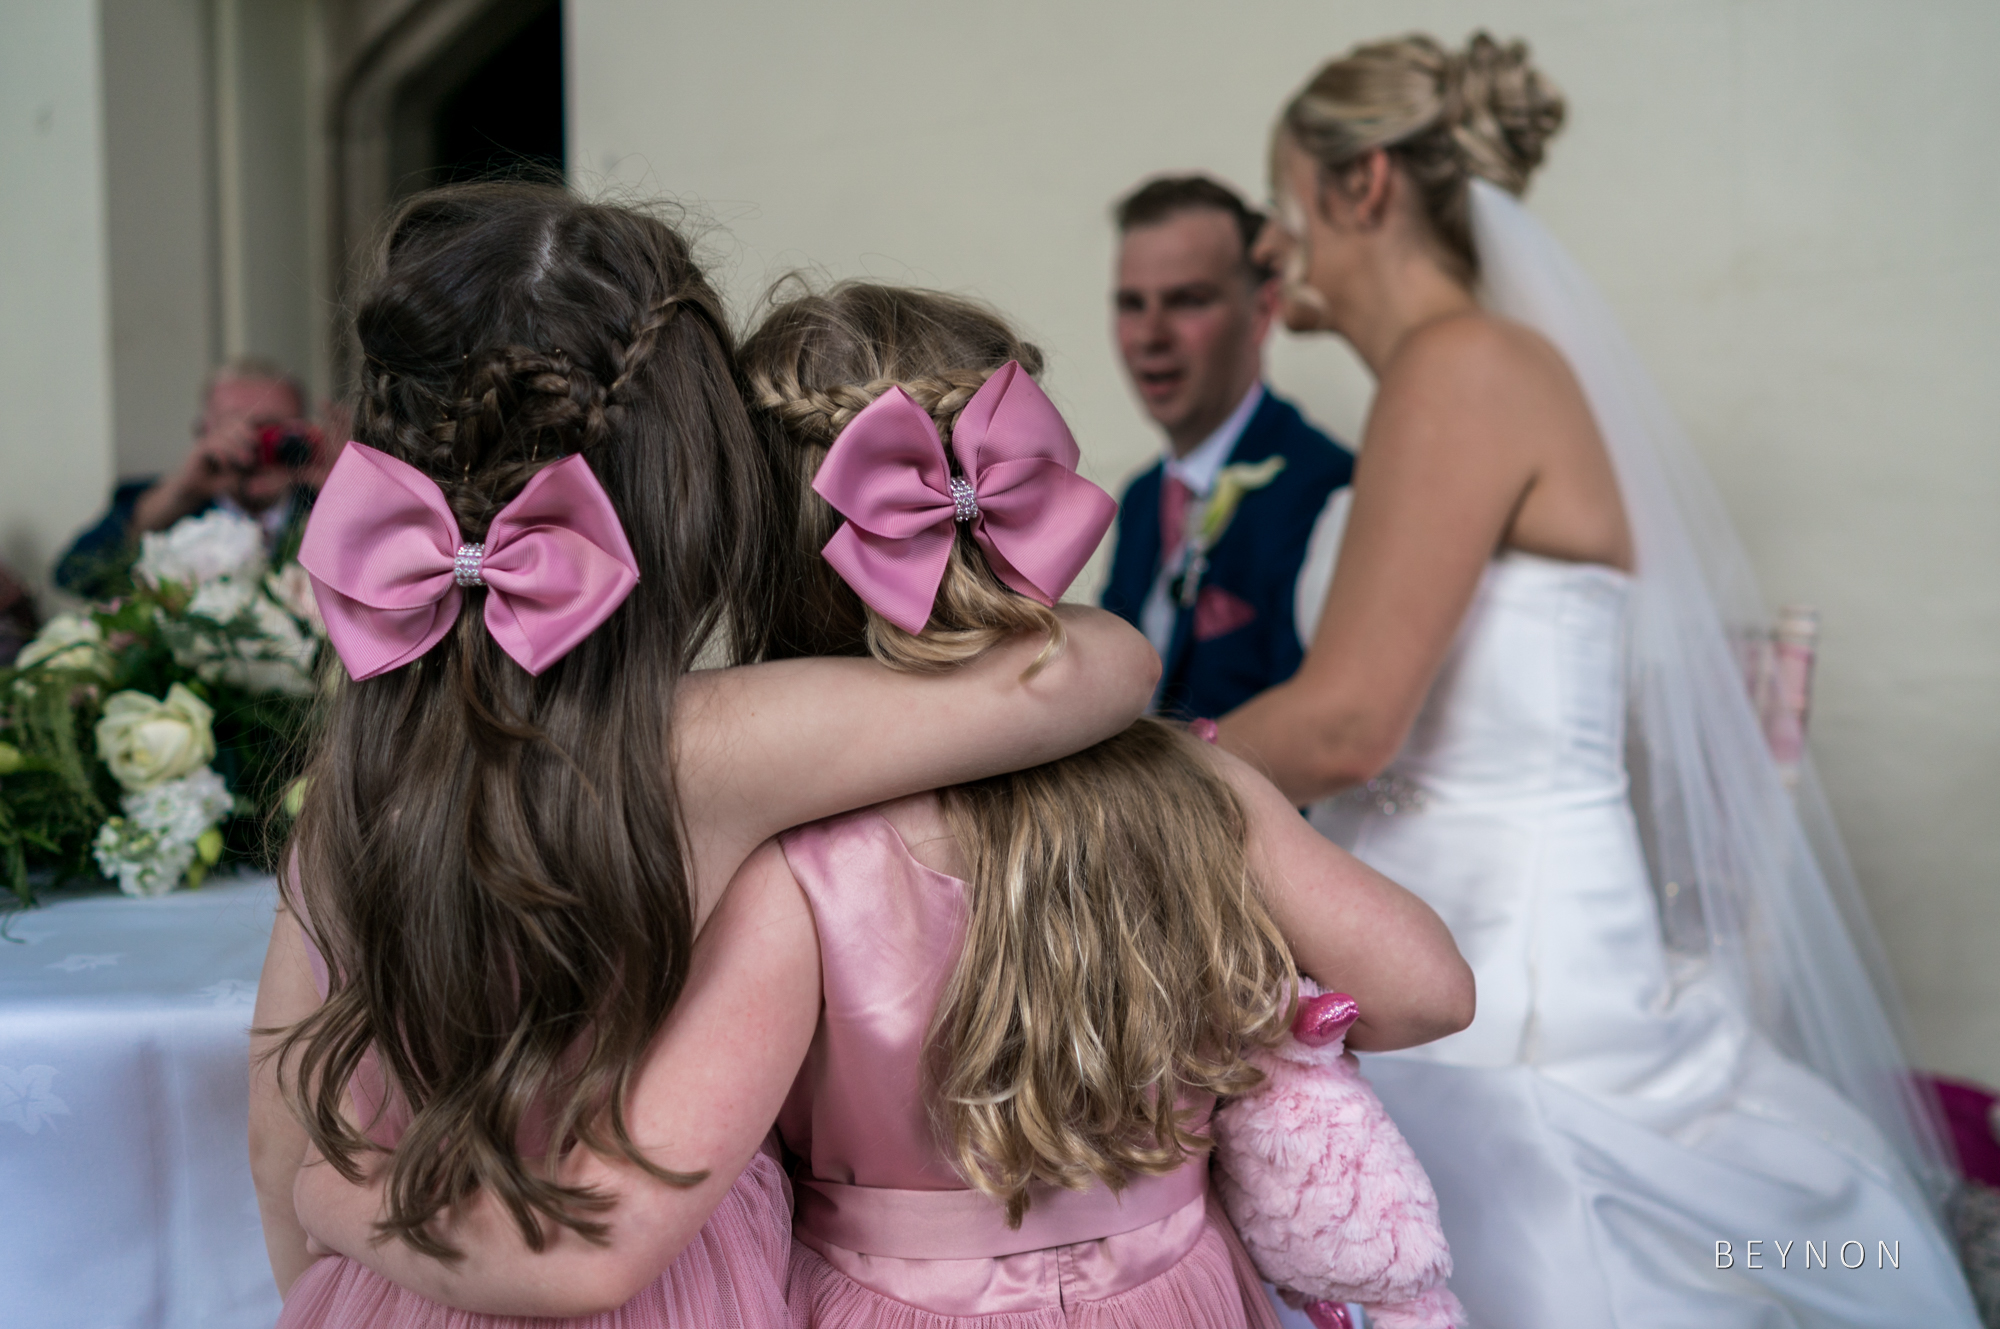 The flower girls watch the newlyweds sign the register